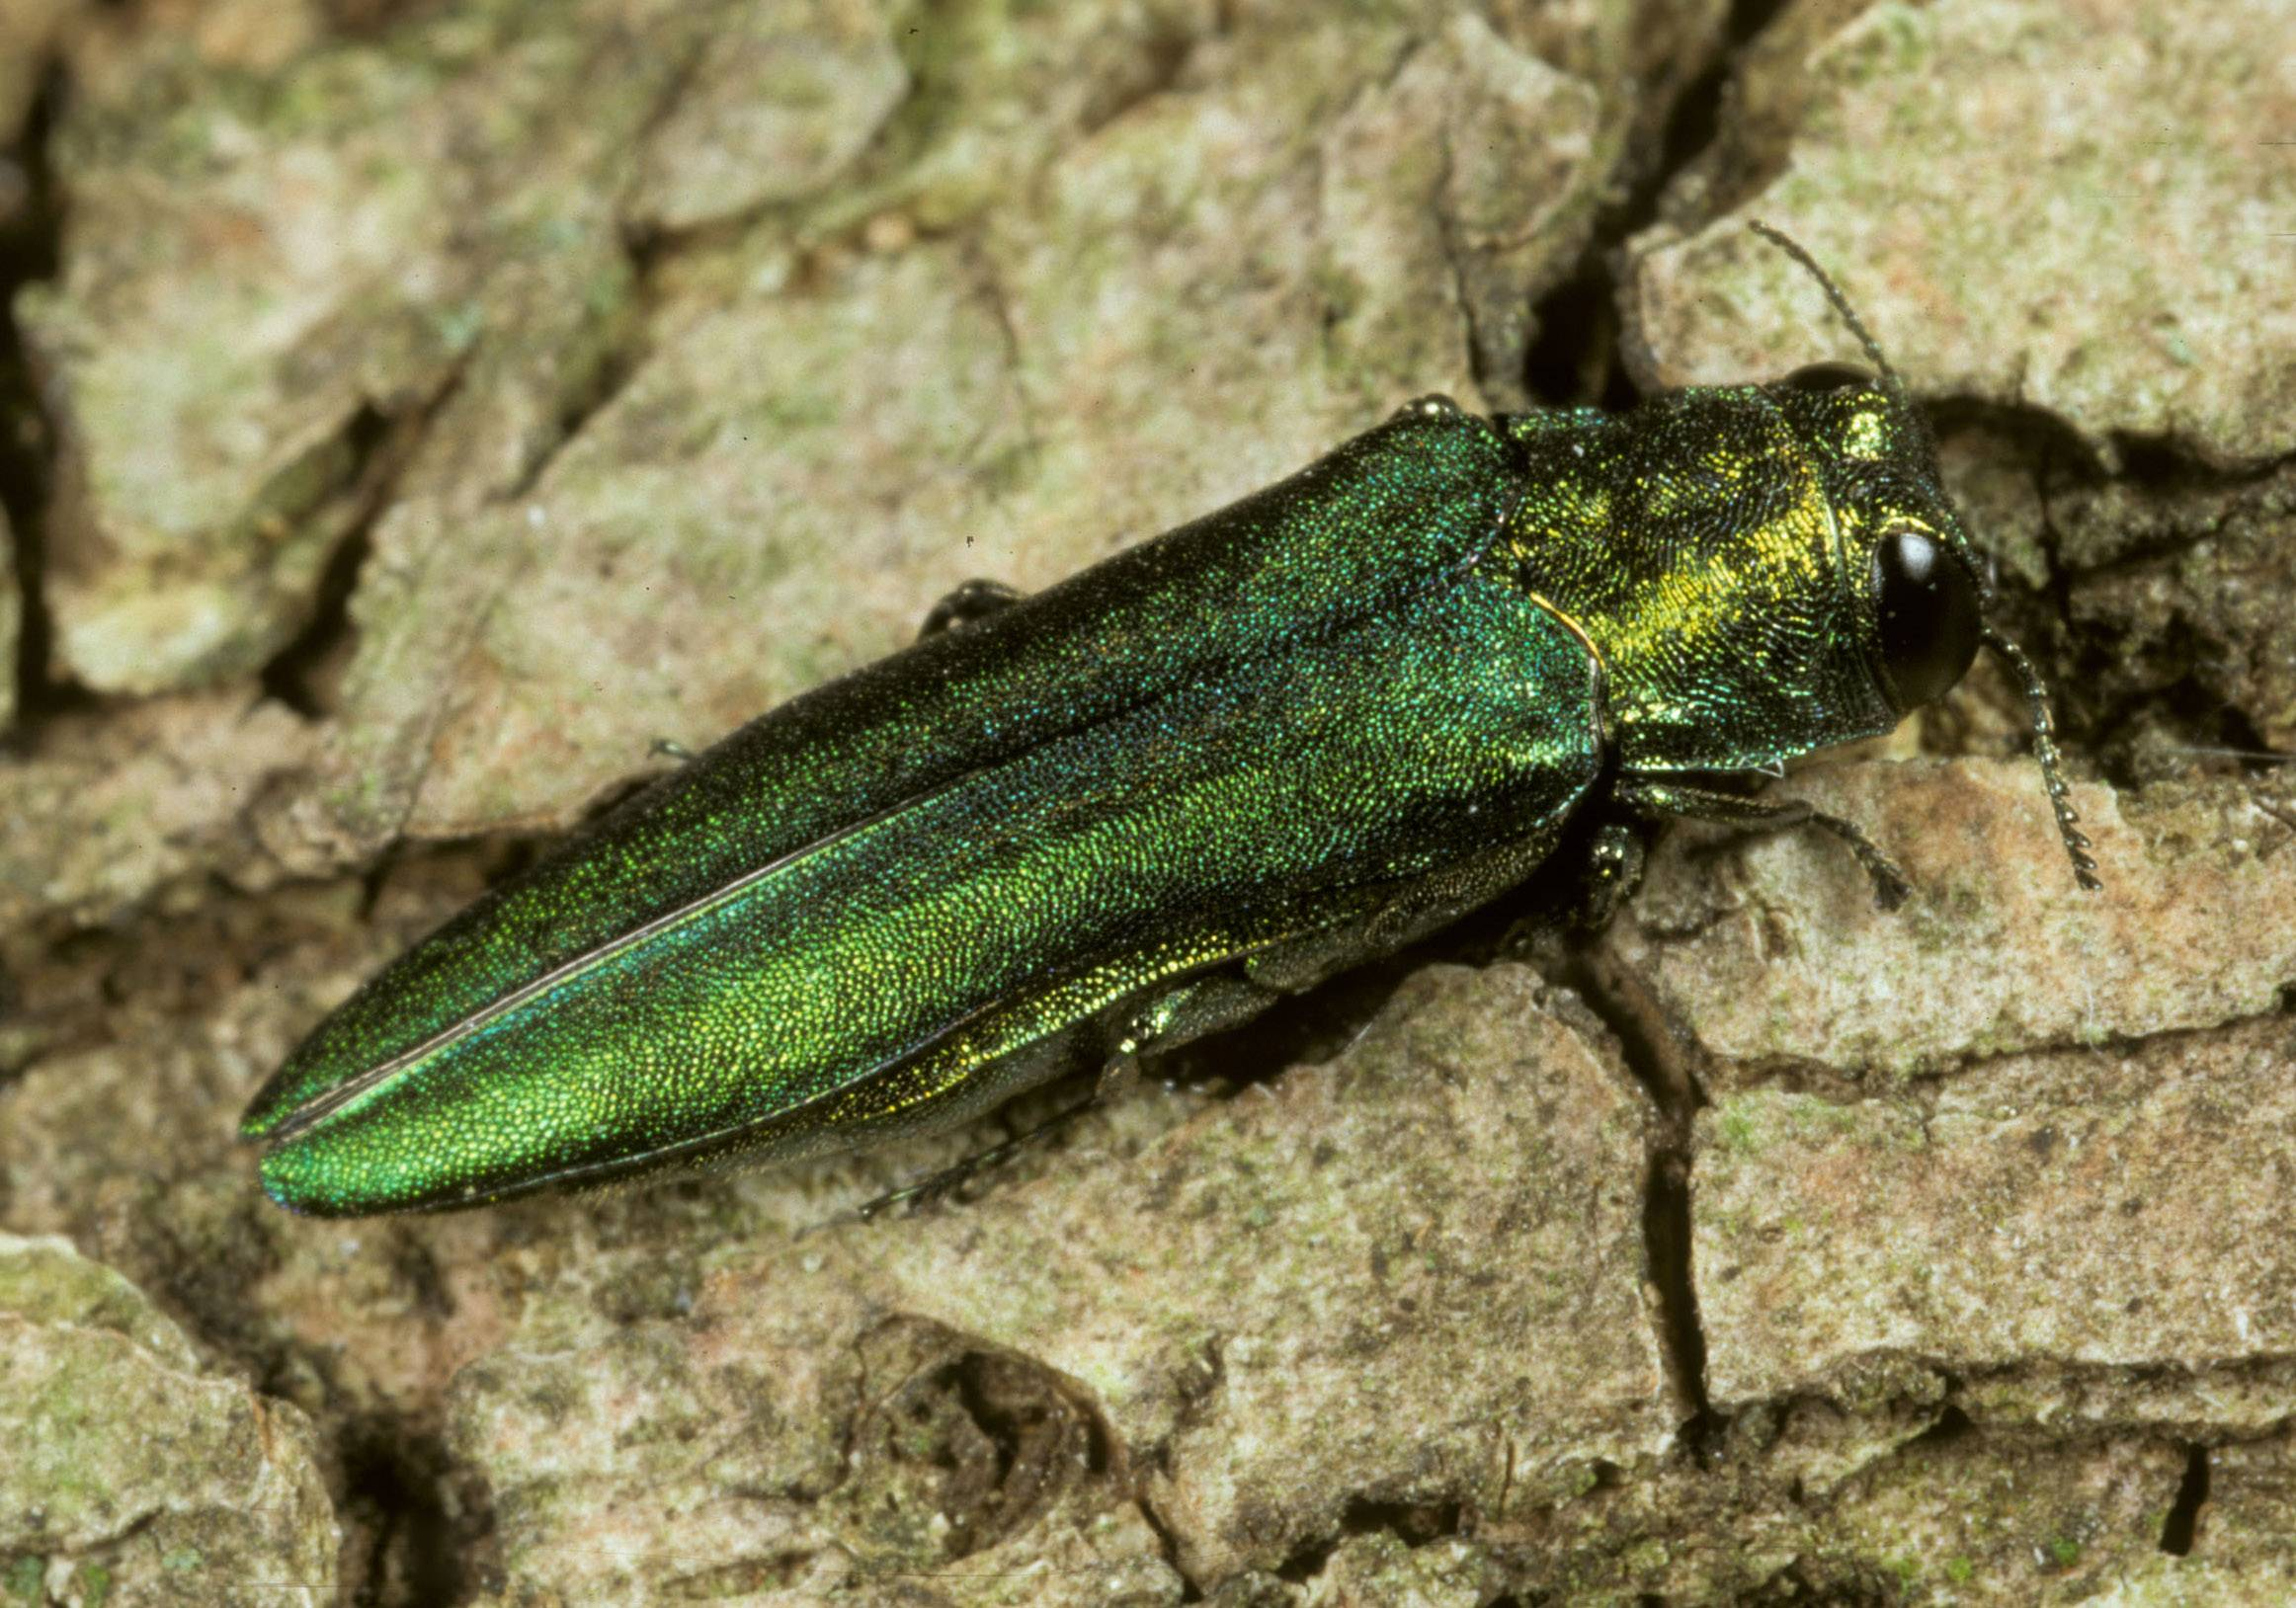 Bartlett officials will pay up to $1.4 million to a contractor clearing trees ravaged by the emerald ash borer through fall 2015.